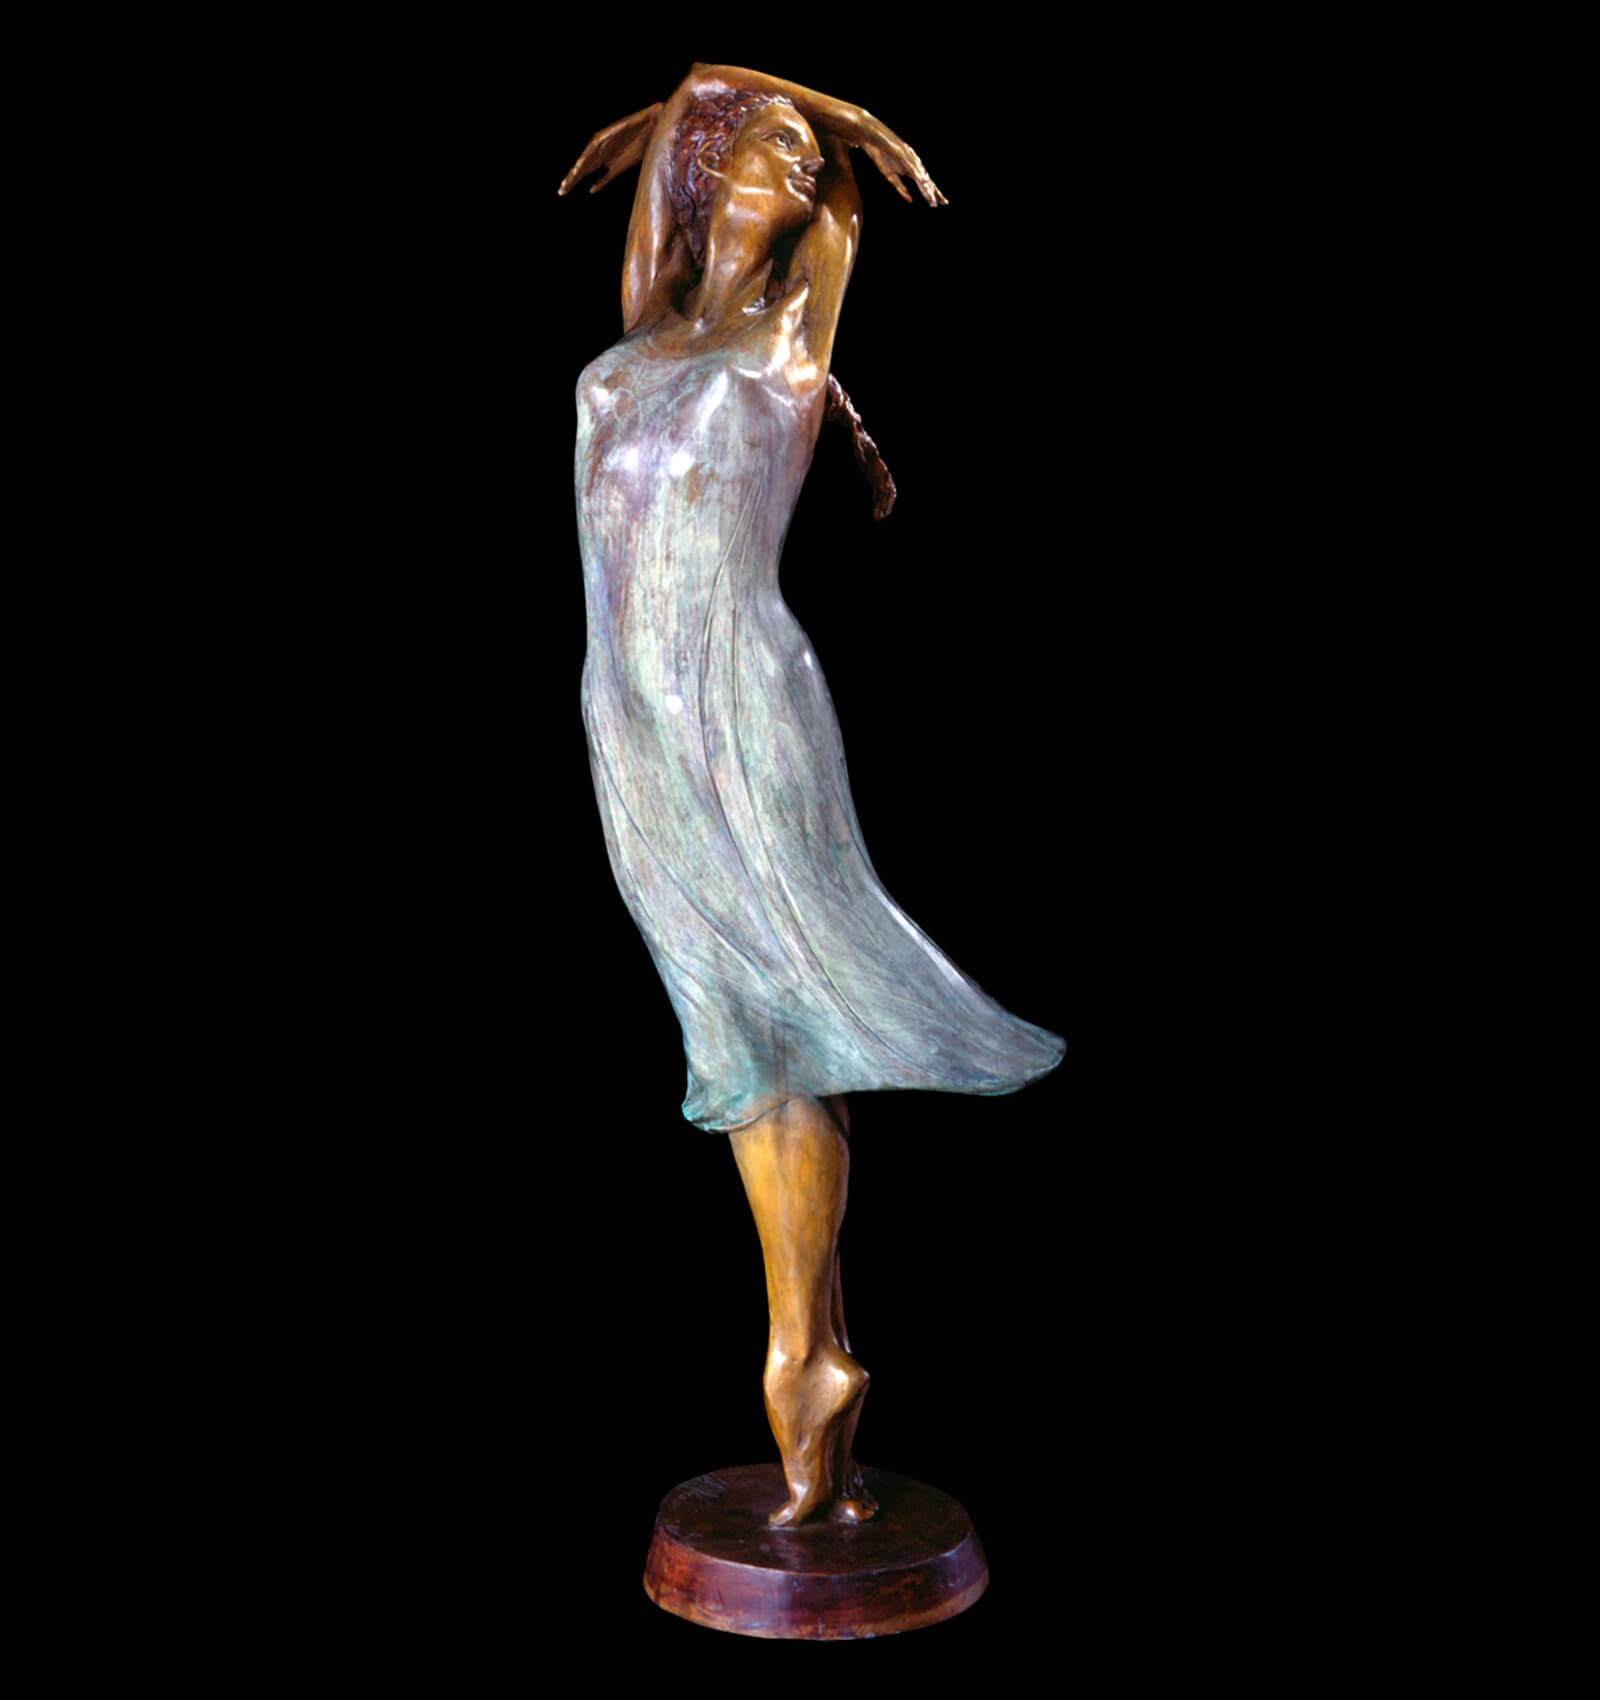 Juliet female bronze ballet dance sculpture by Andrew DeVries. Edition sold out but available to commission larger.